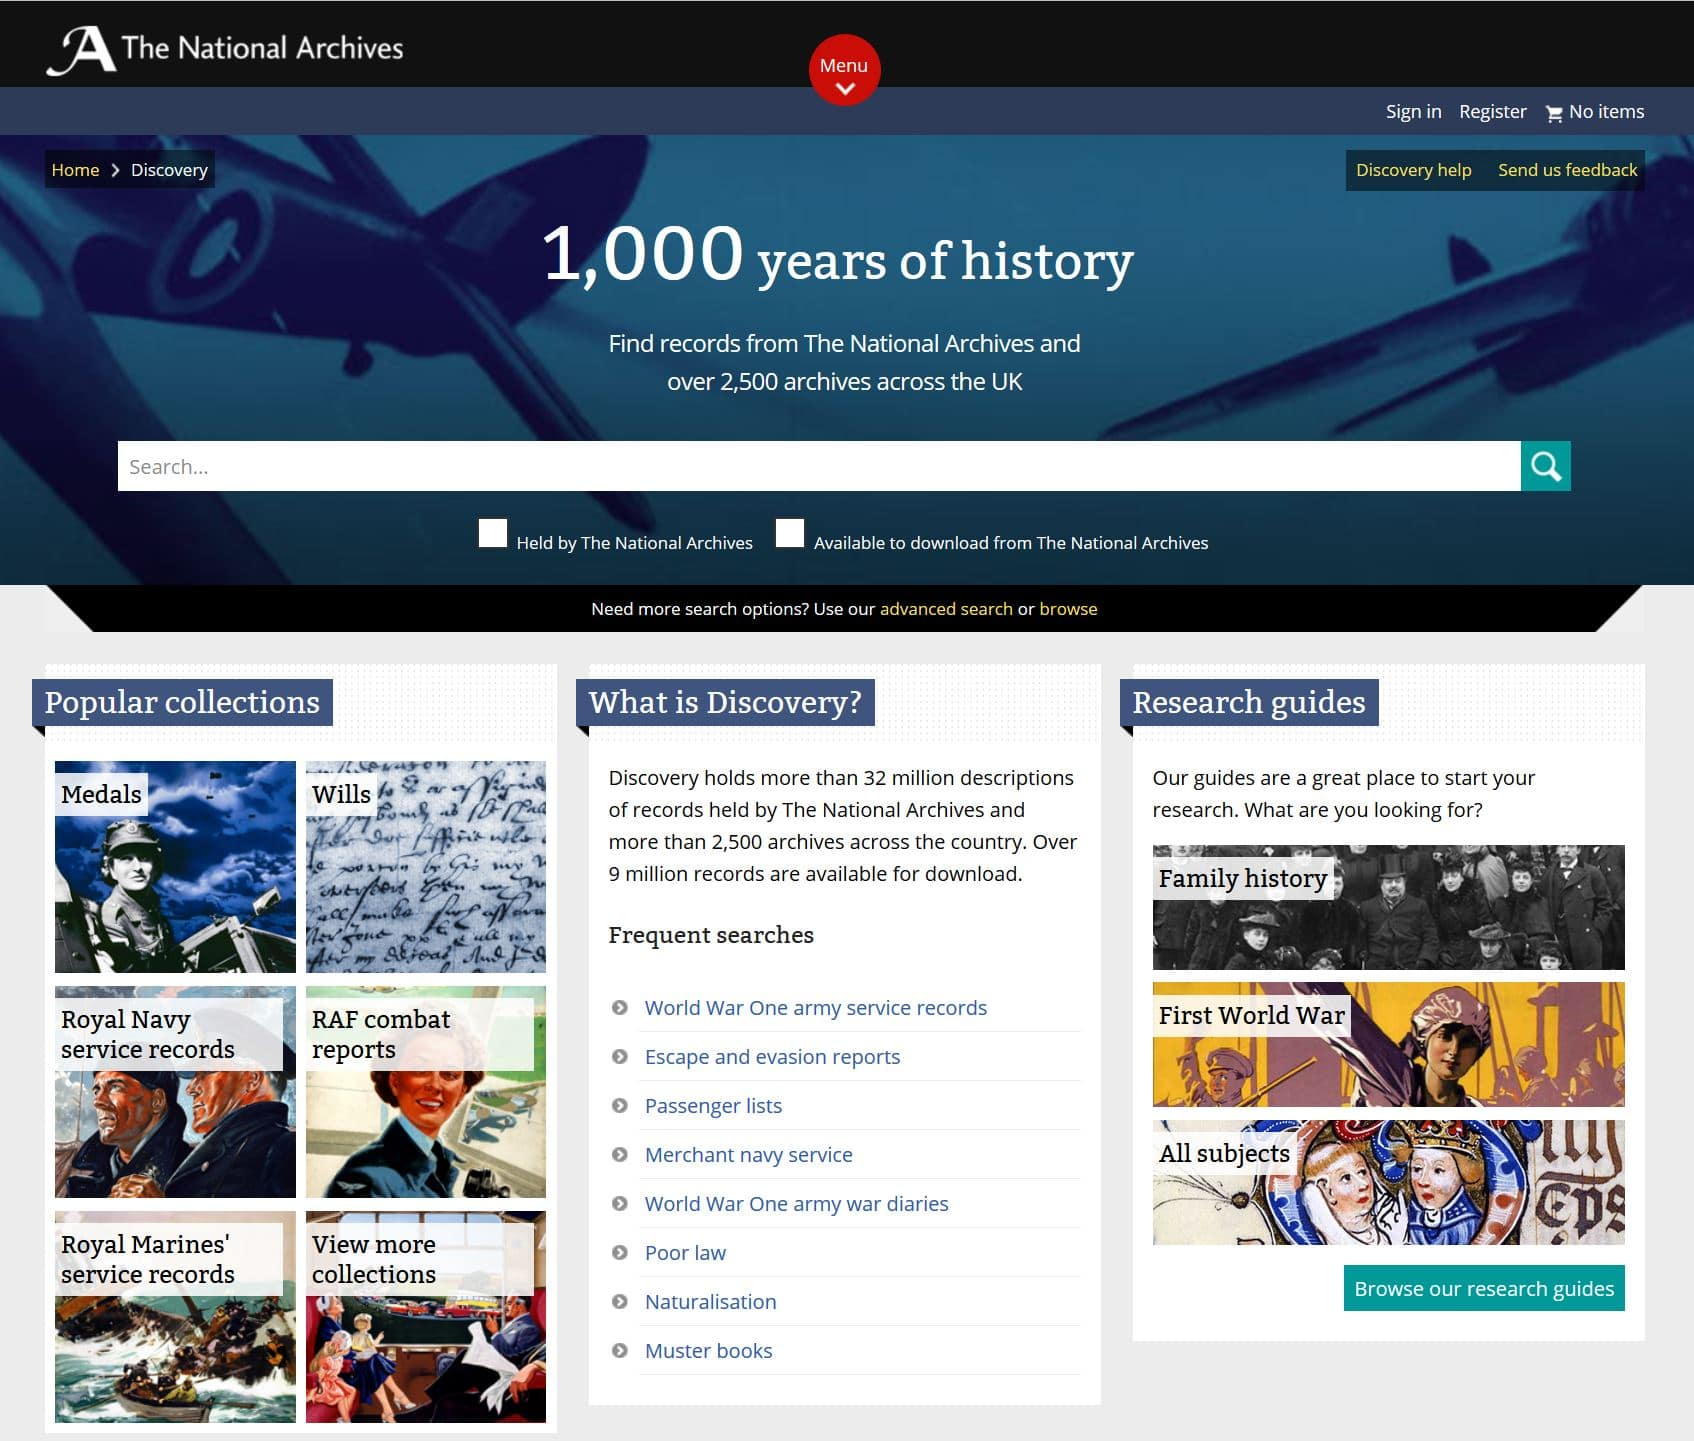 British, Irish, Scottish, Welsh Genealogy Research Guide, The National Archives online record collections